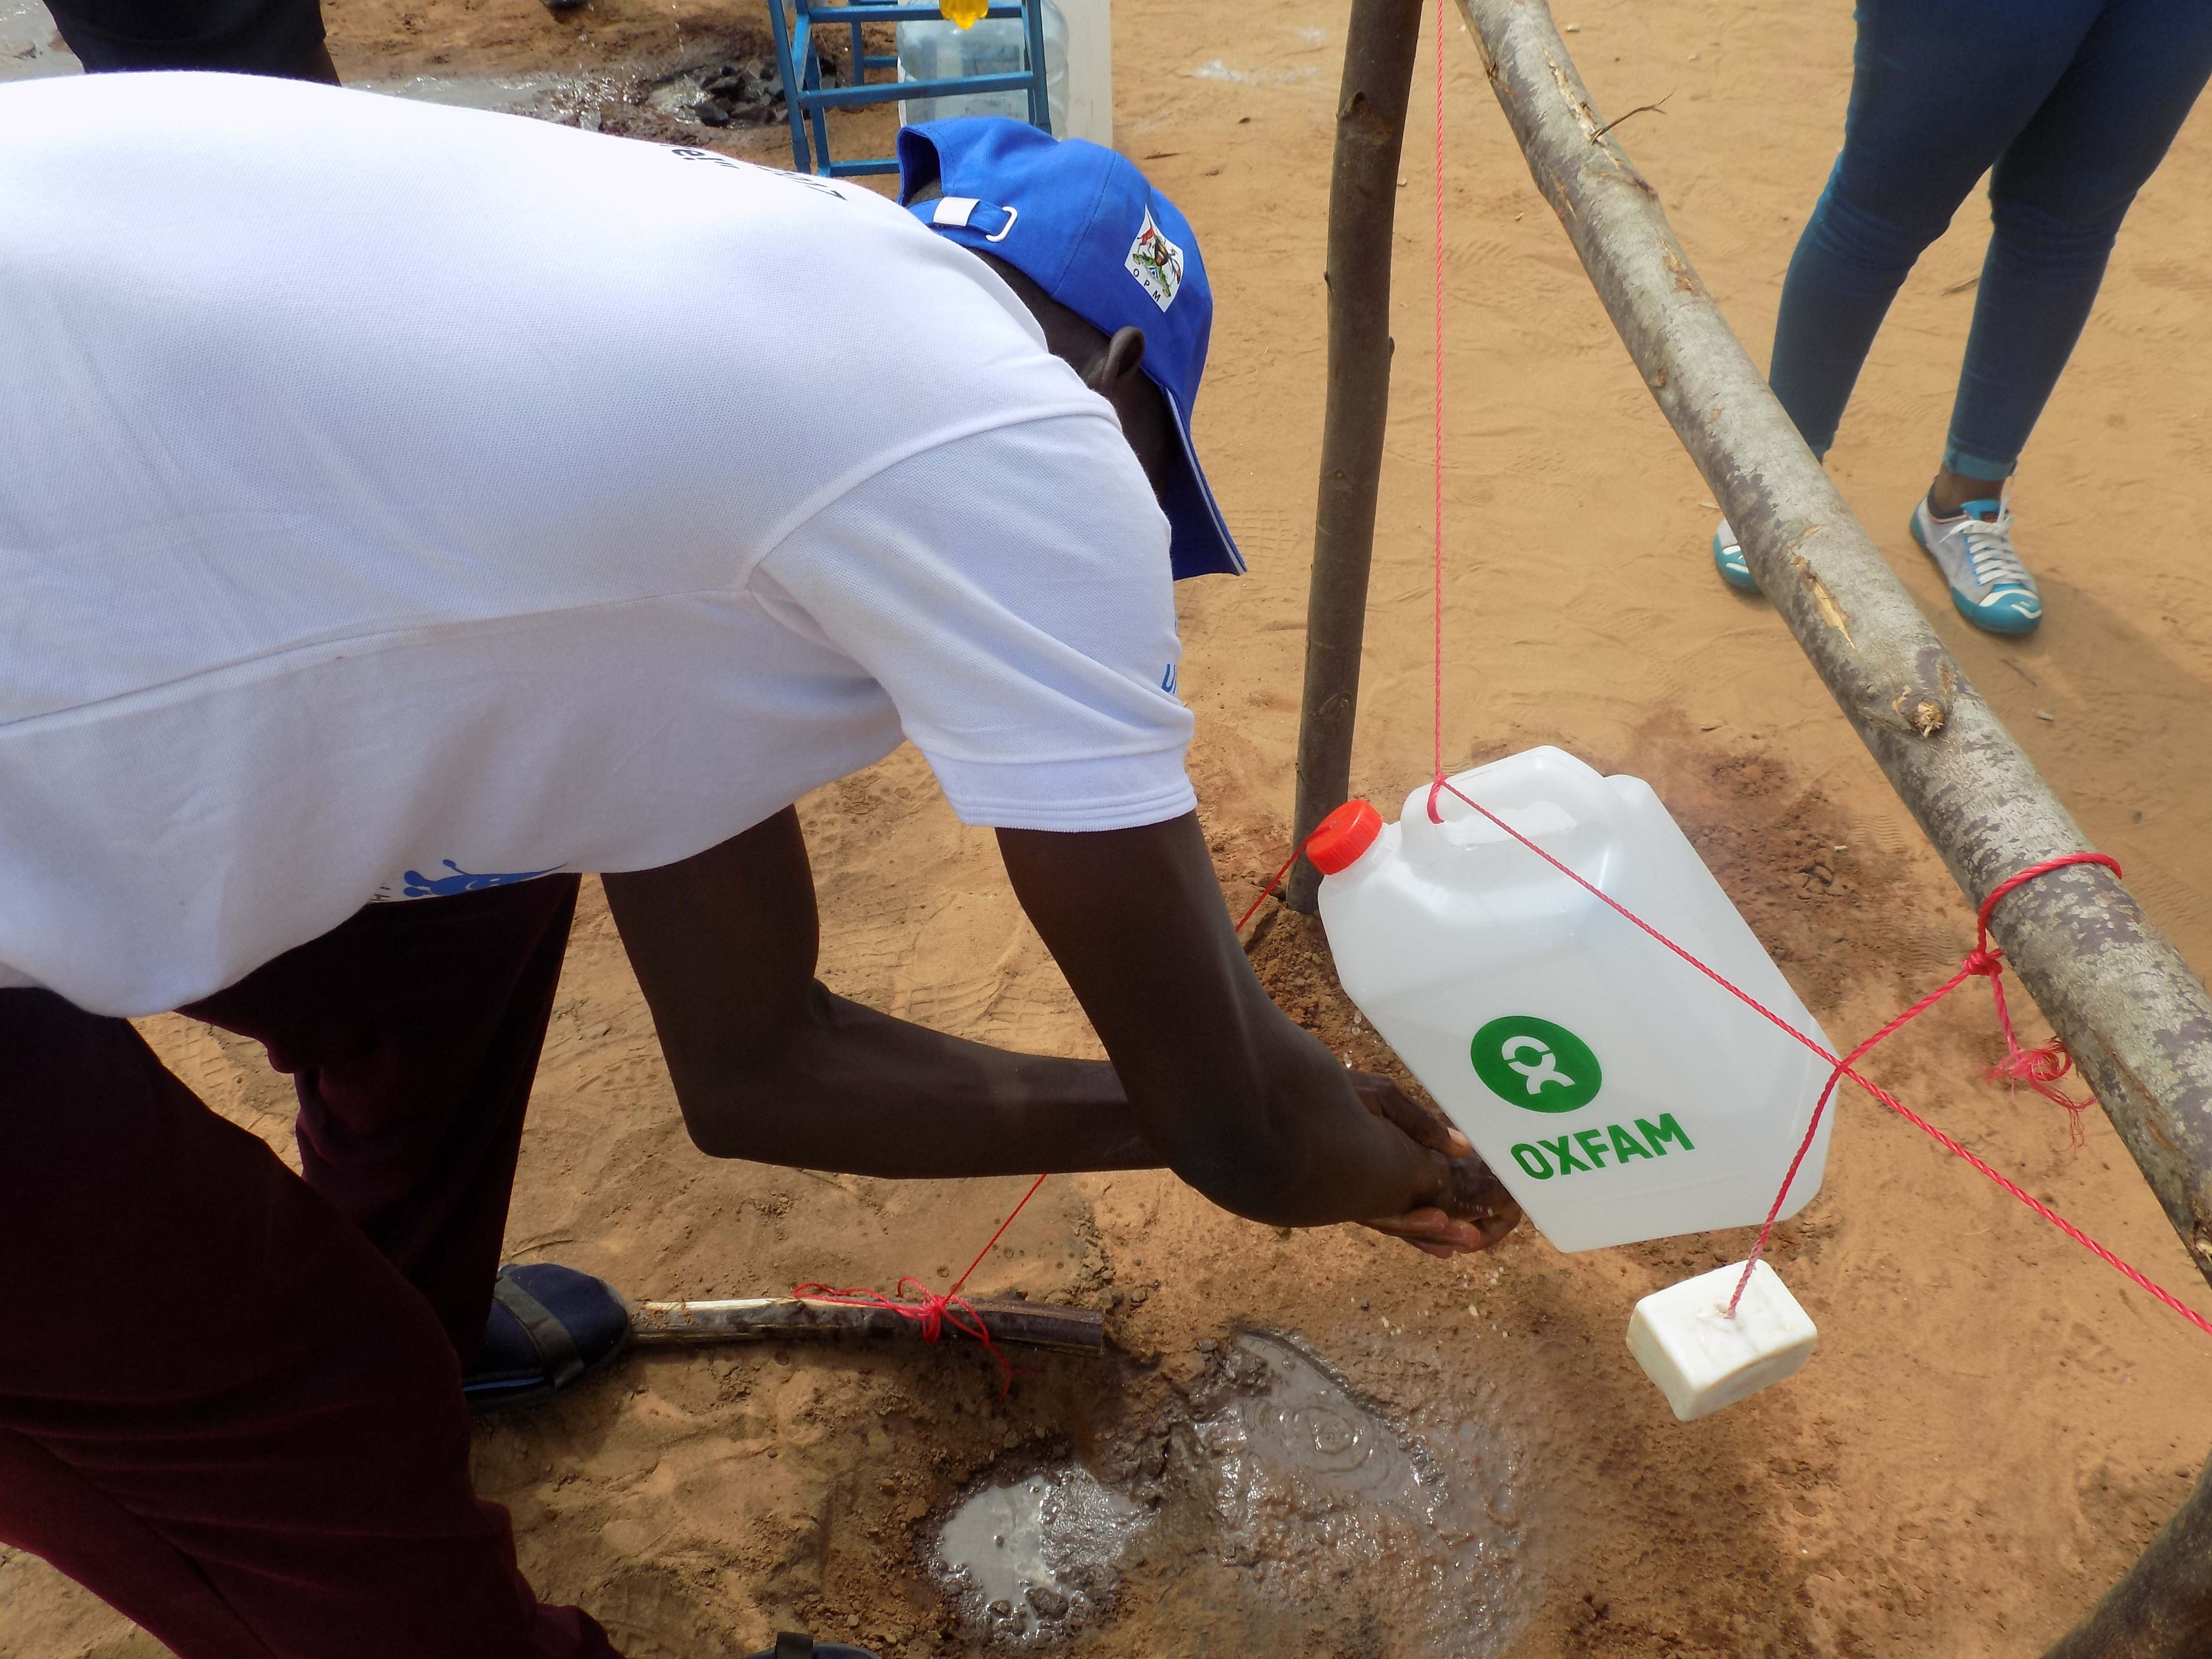 Hand washing is a very important component that hygiene promoters emphasize to the refugees.